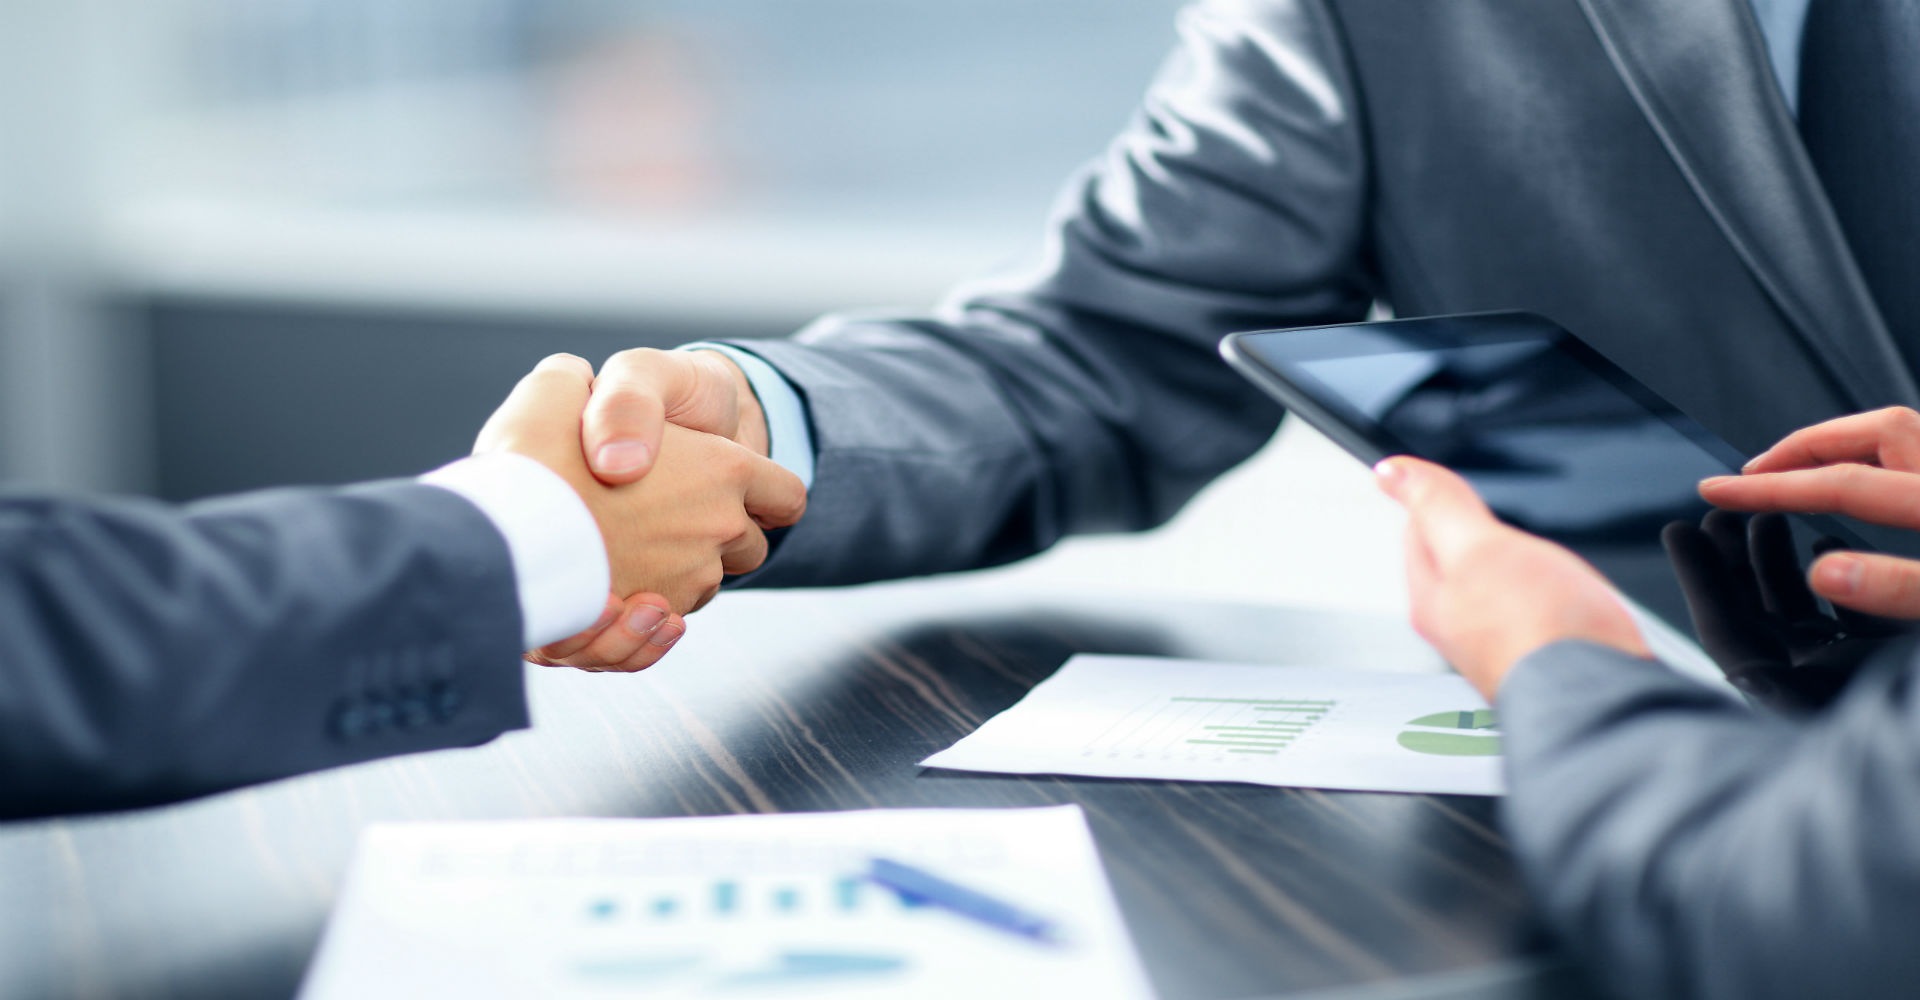 developing-a-mergers-and-acquisitions-it-integration-plan